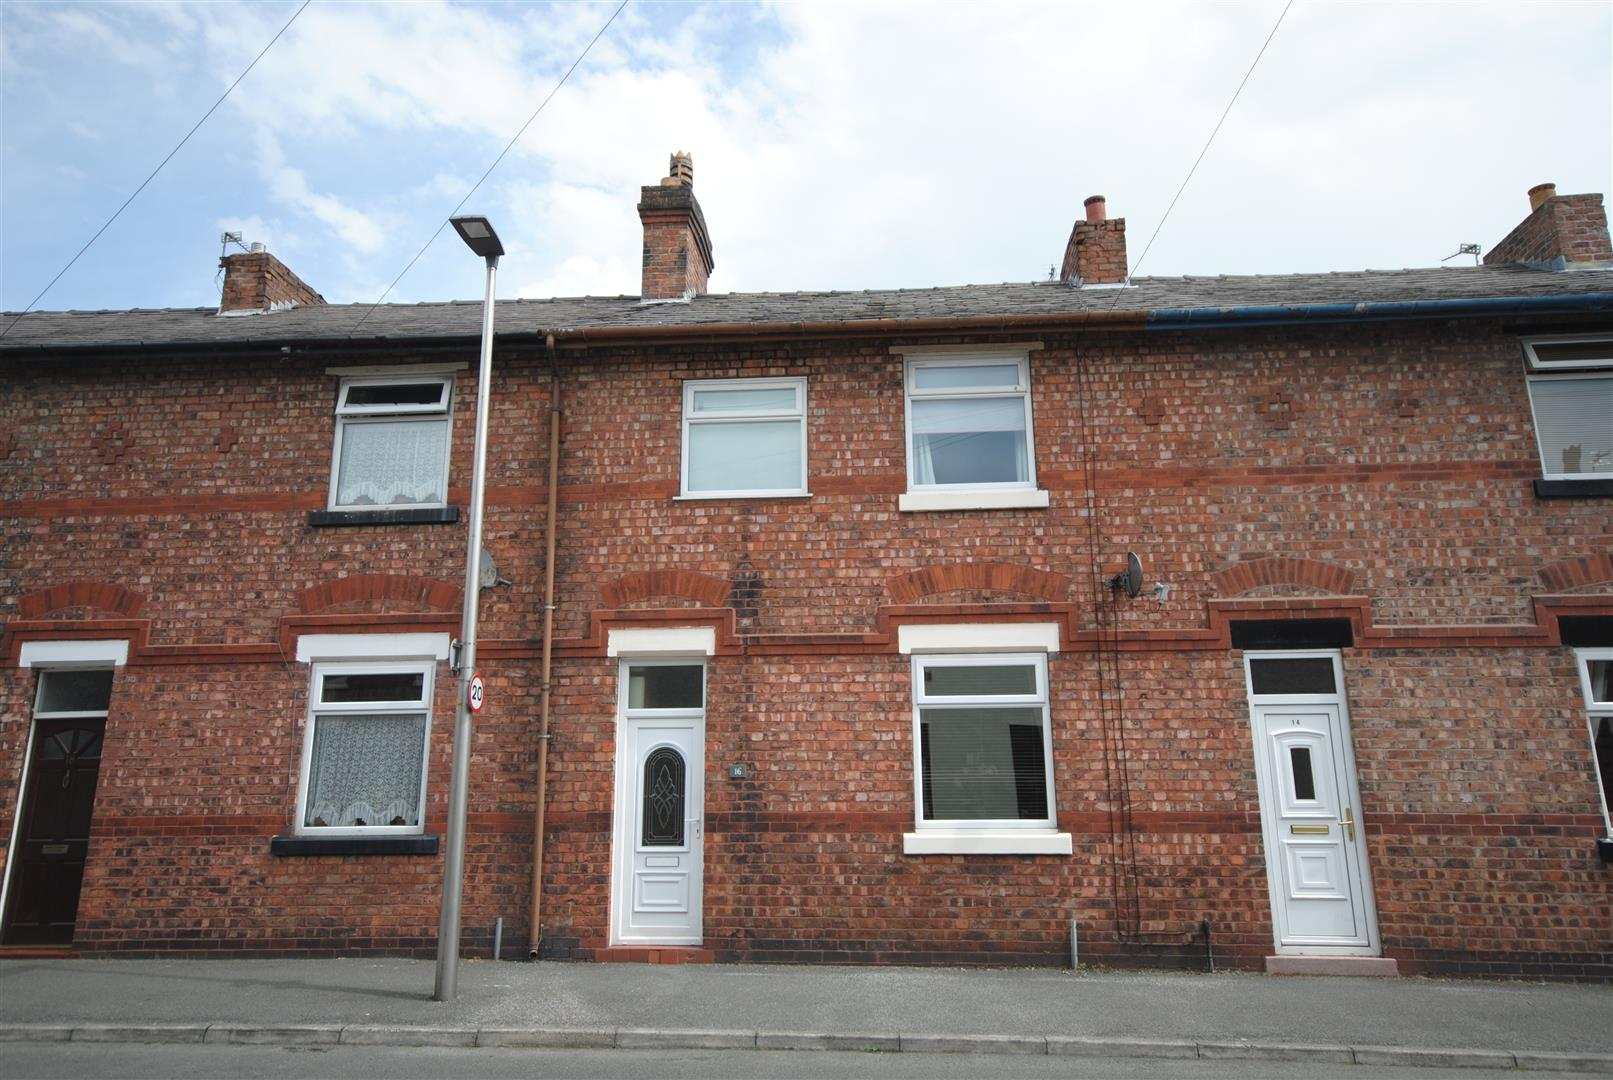 3 Bedrooms House for sale in Stirling Street, Wigan